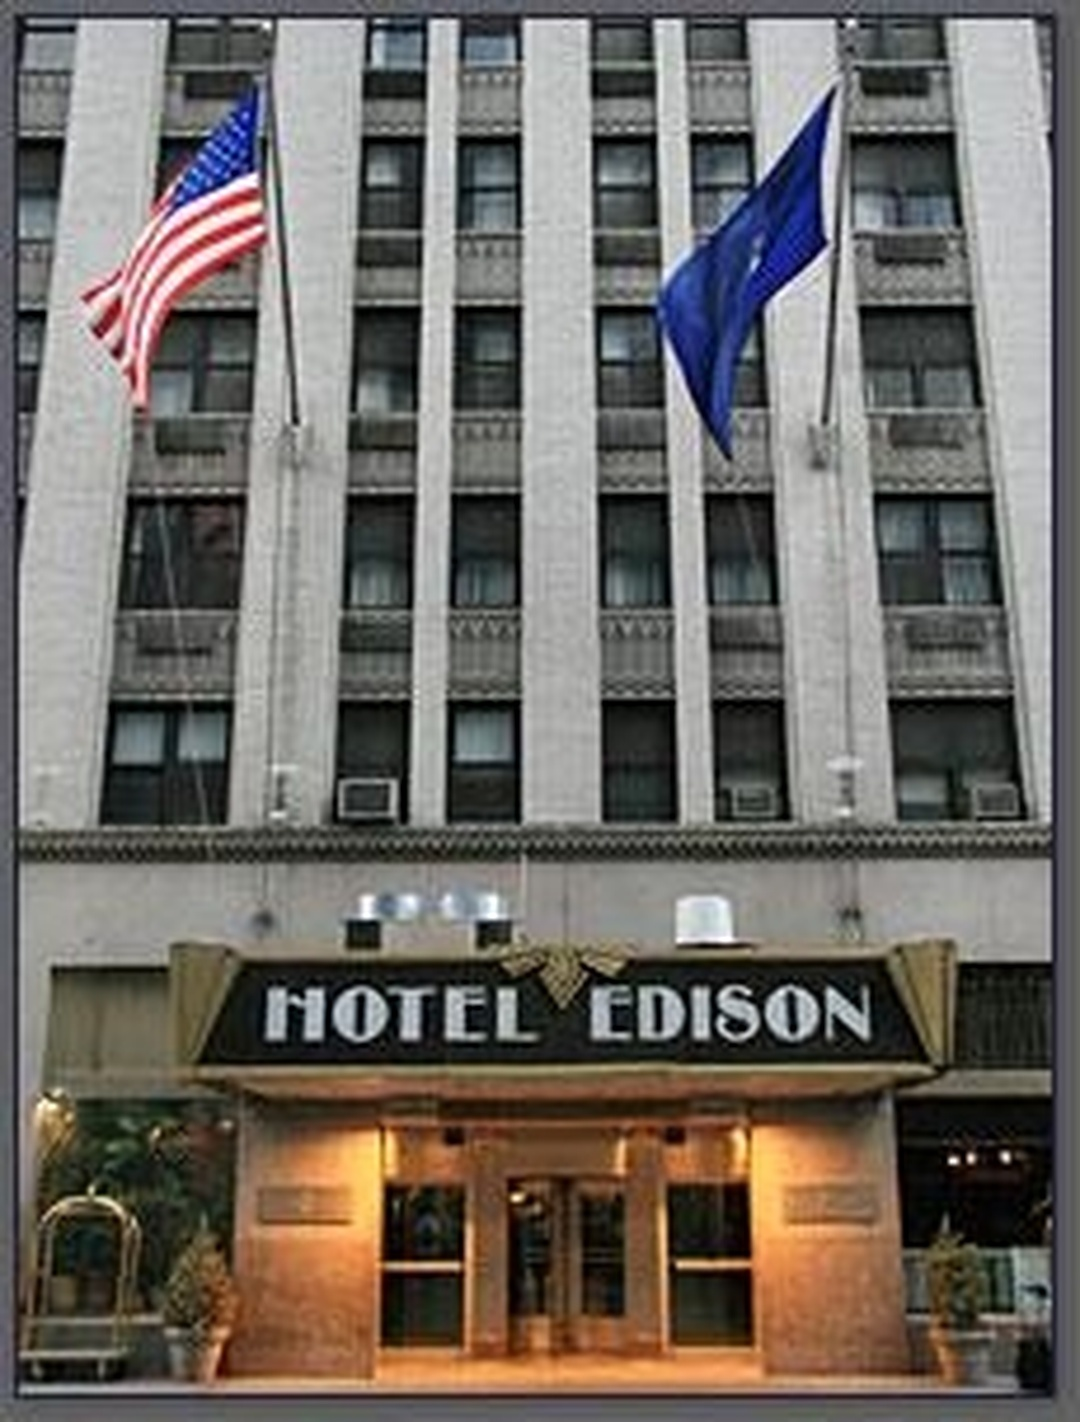 Photo du 5 février 2016 18:53, Hotel Edison, 228 W 47th St, New York, NY 10036, États-Unis